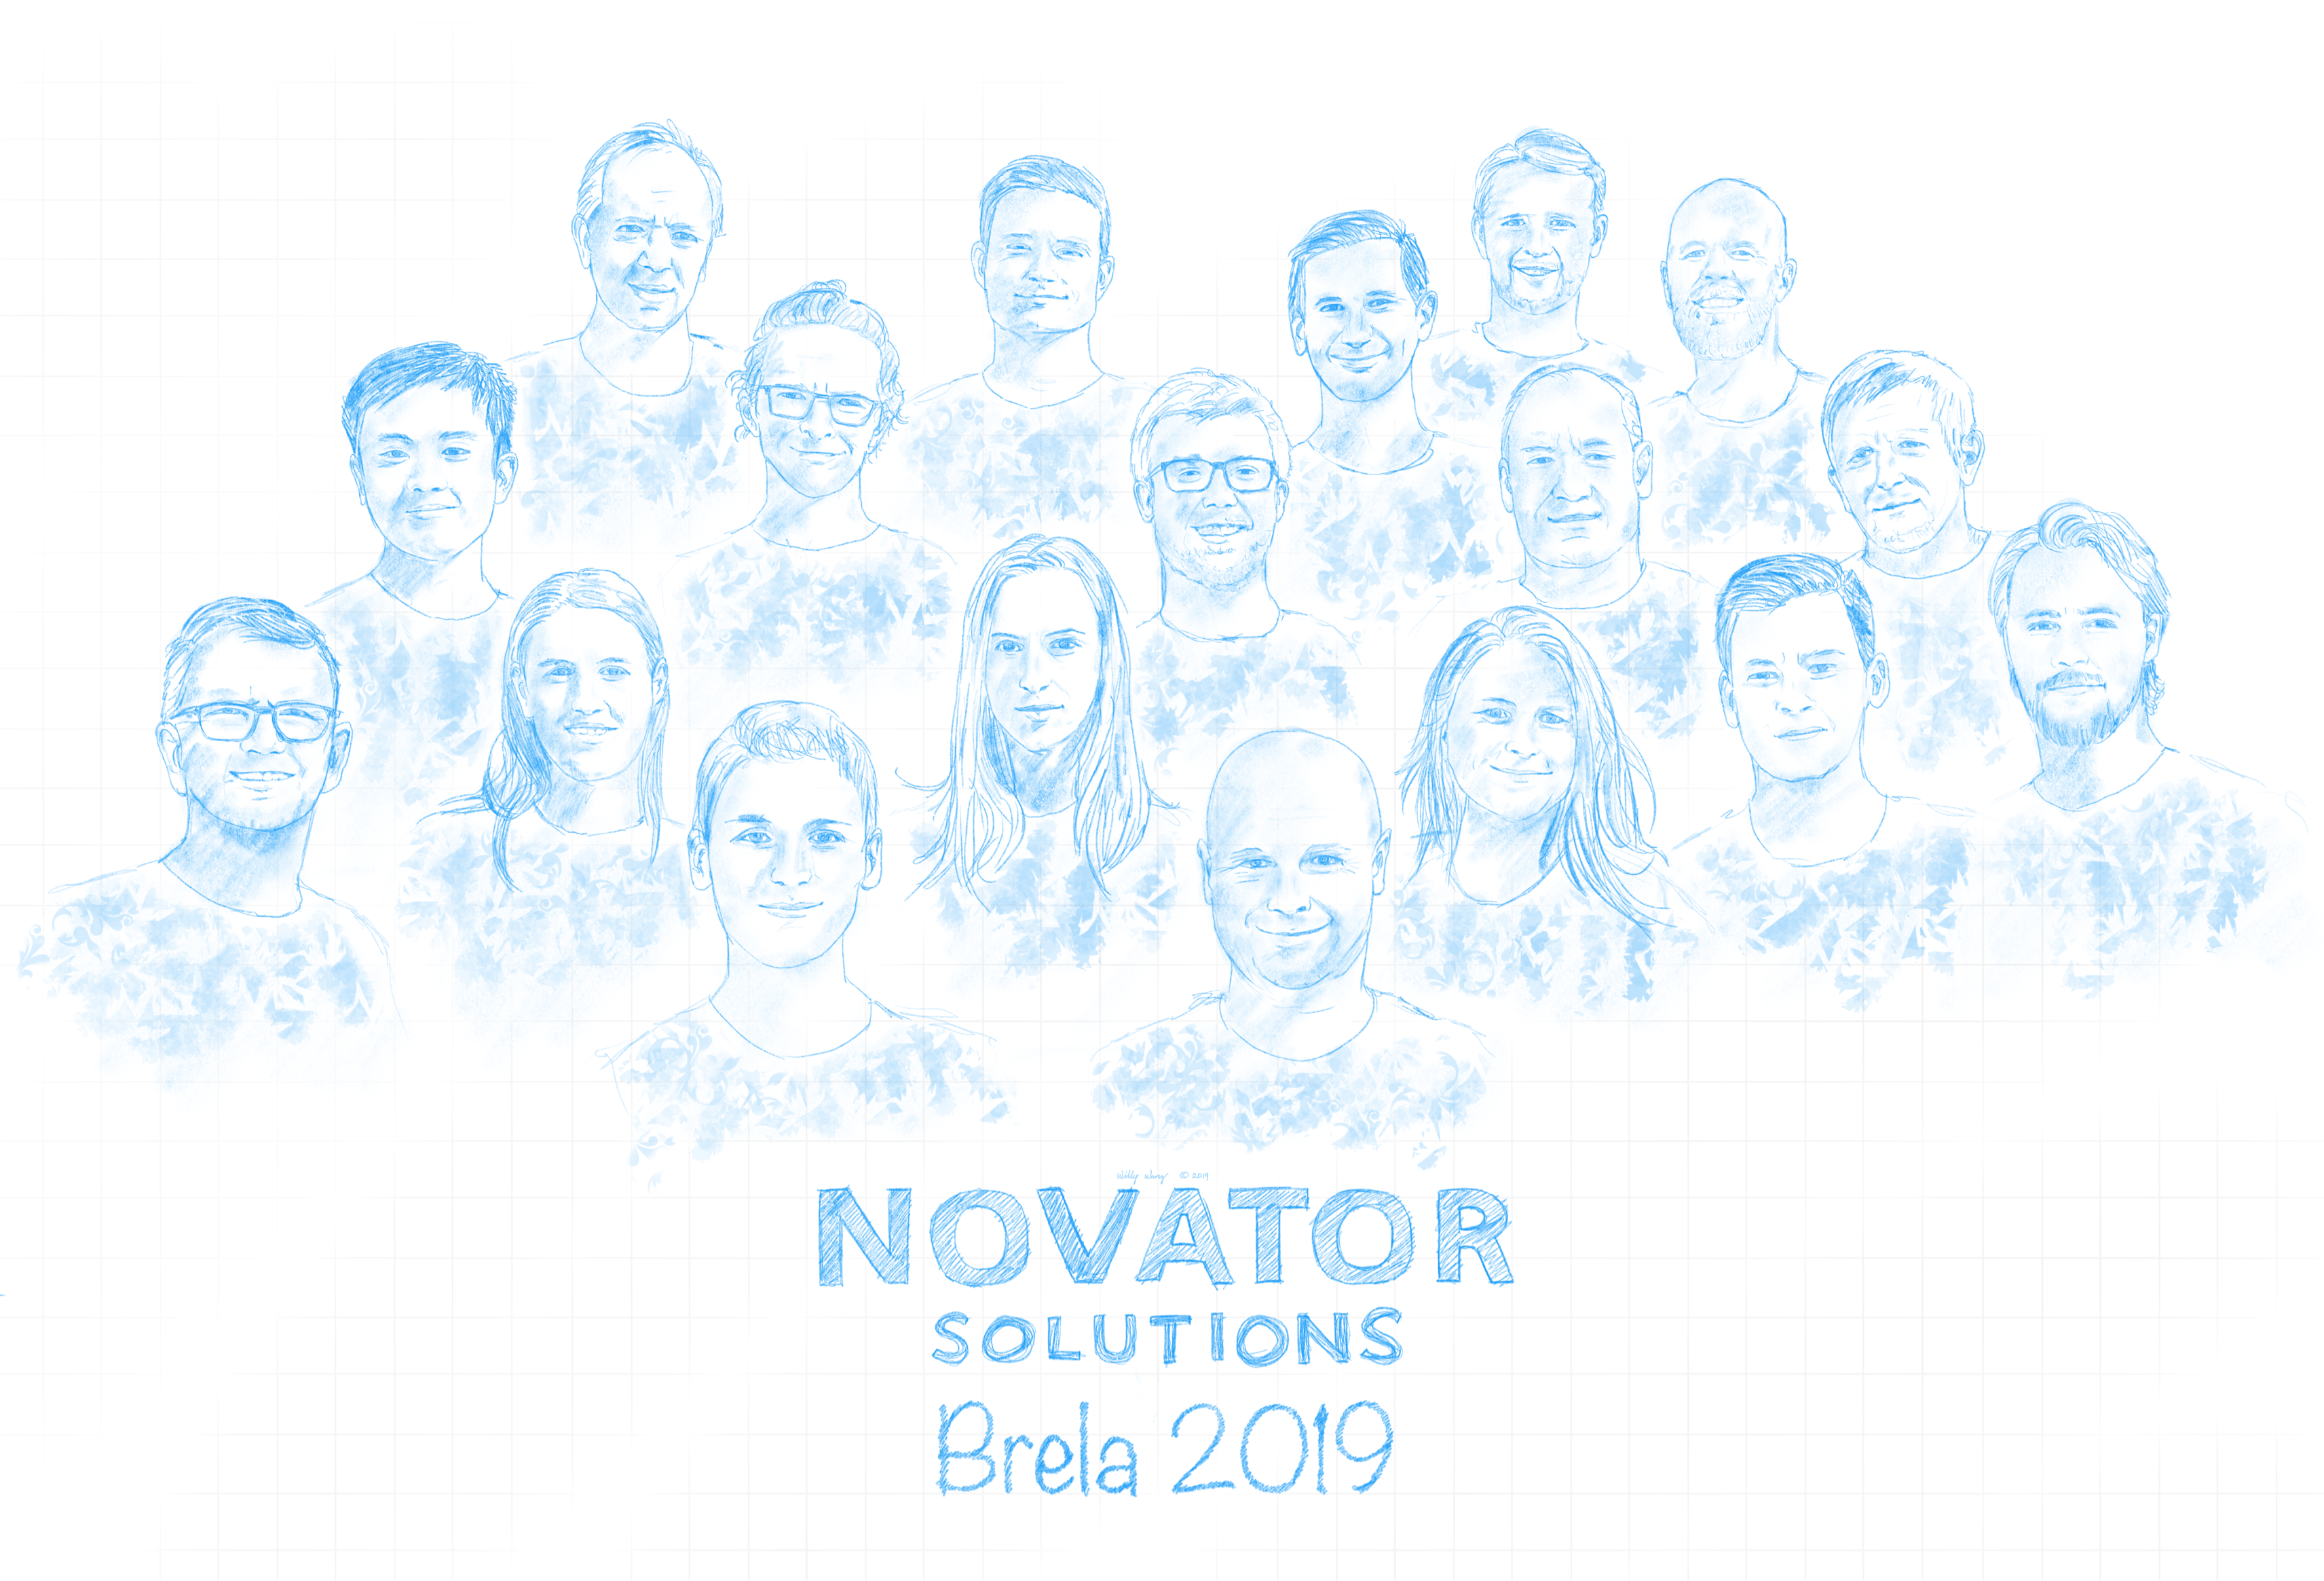 novator solution team